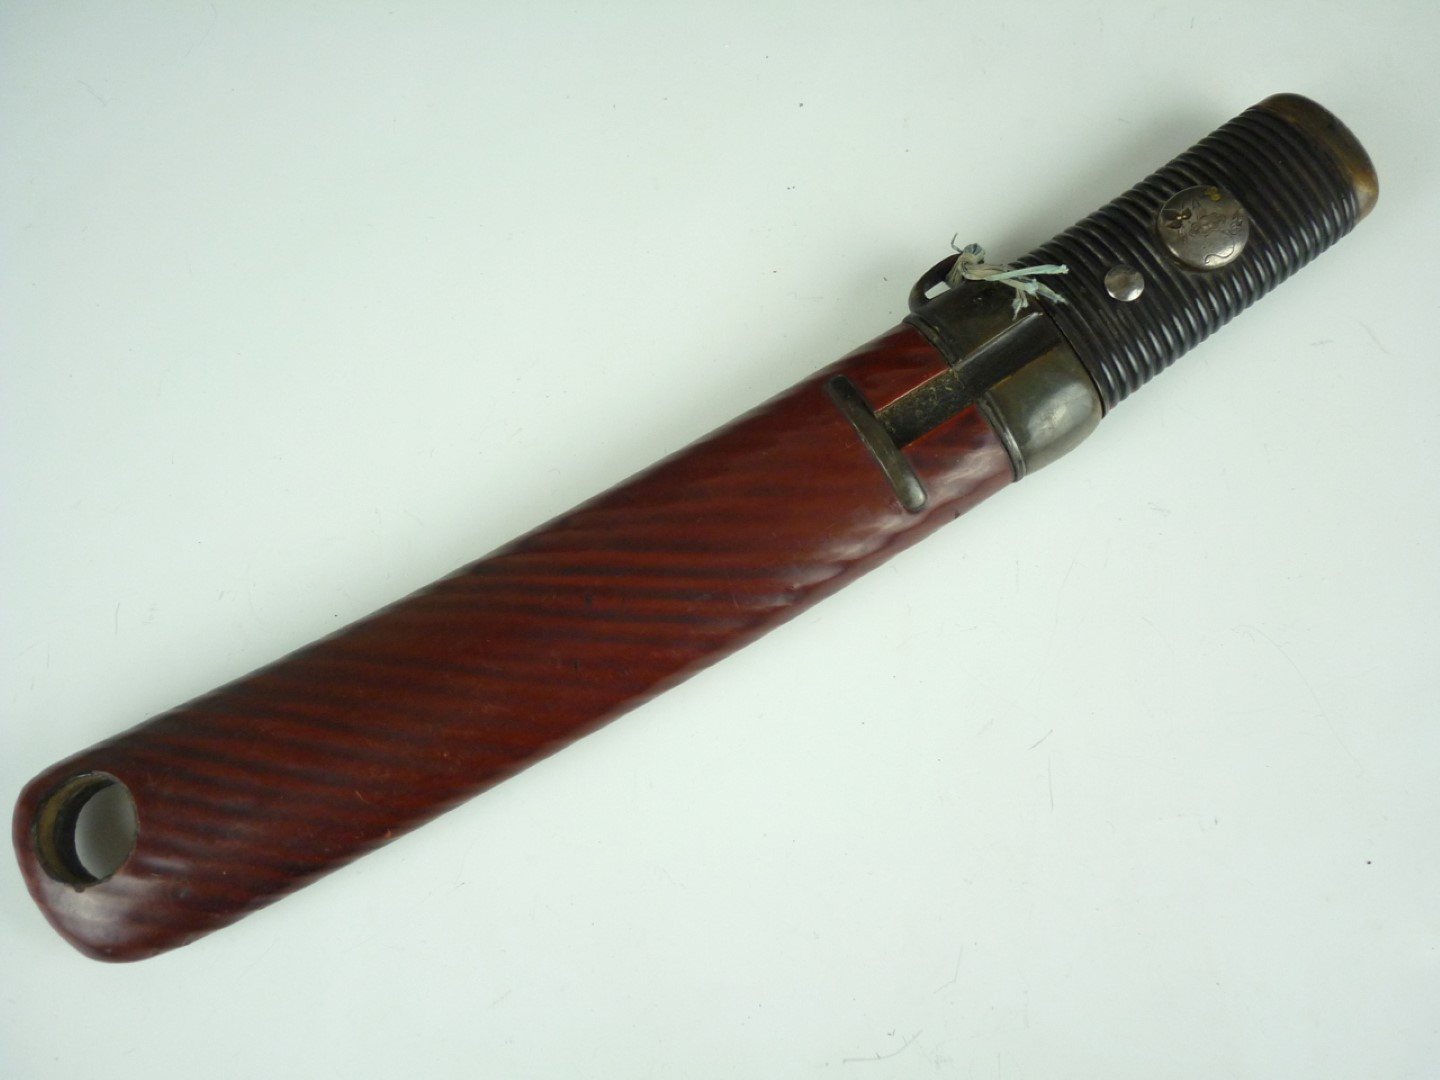 Lot 104 - A Second World War German Kriegsmarine officer's dagger by Eikhorn, with portepee and hanging